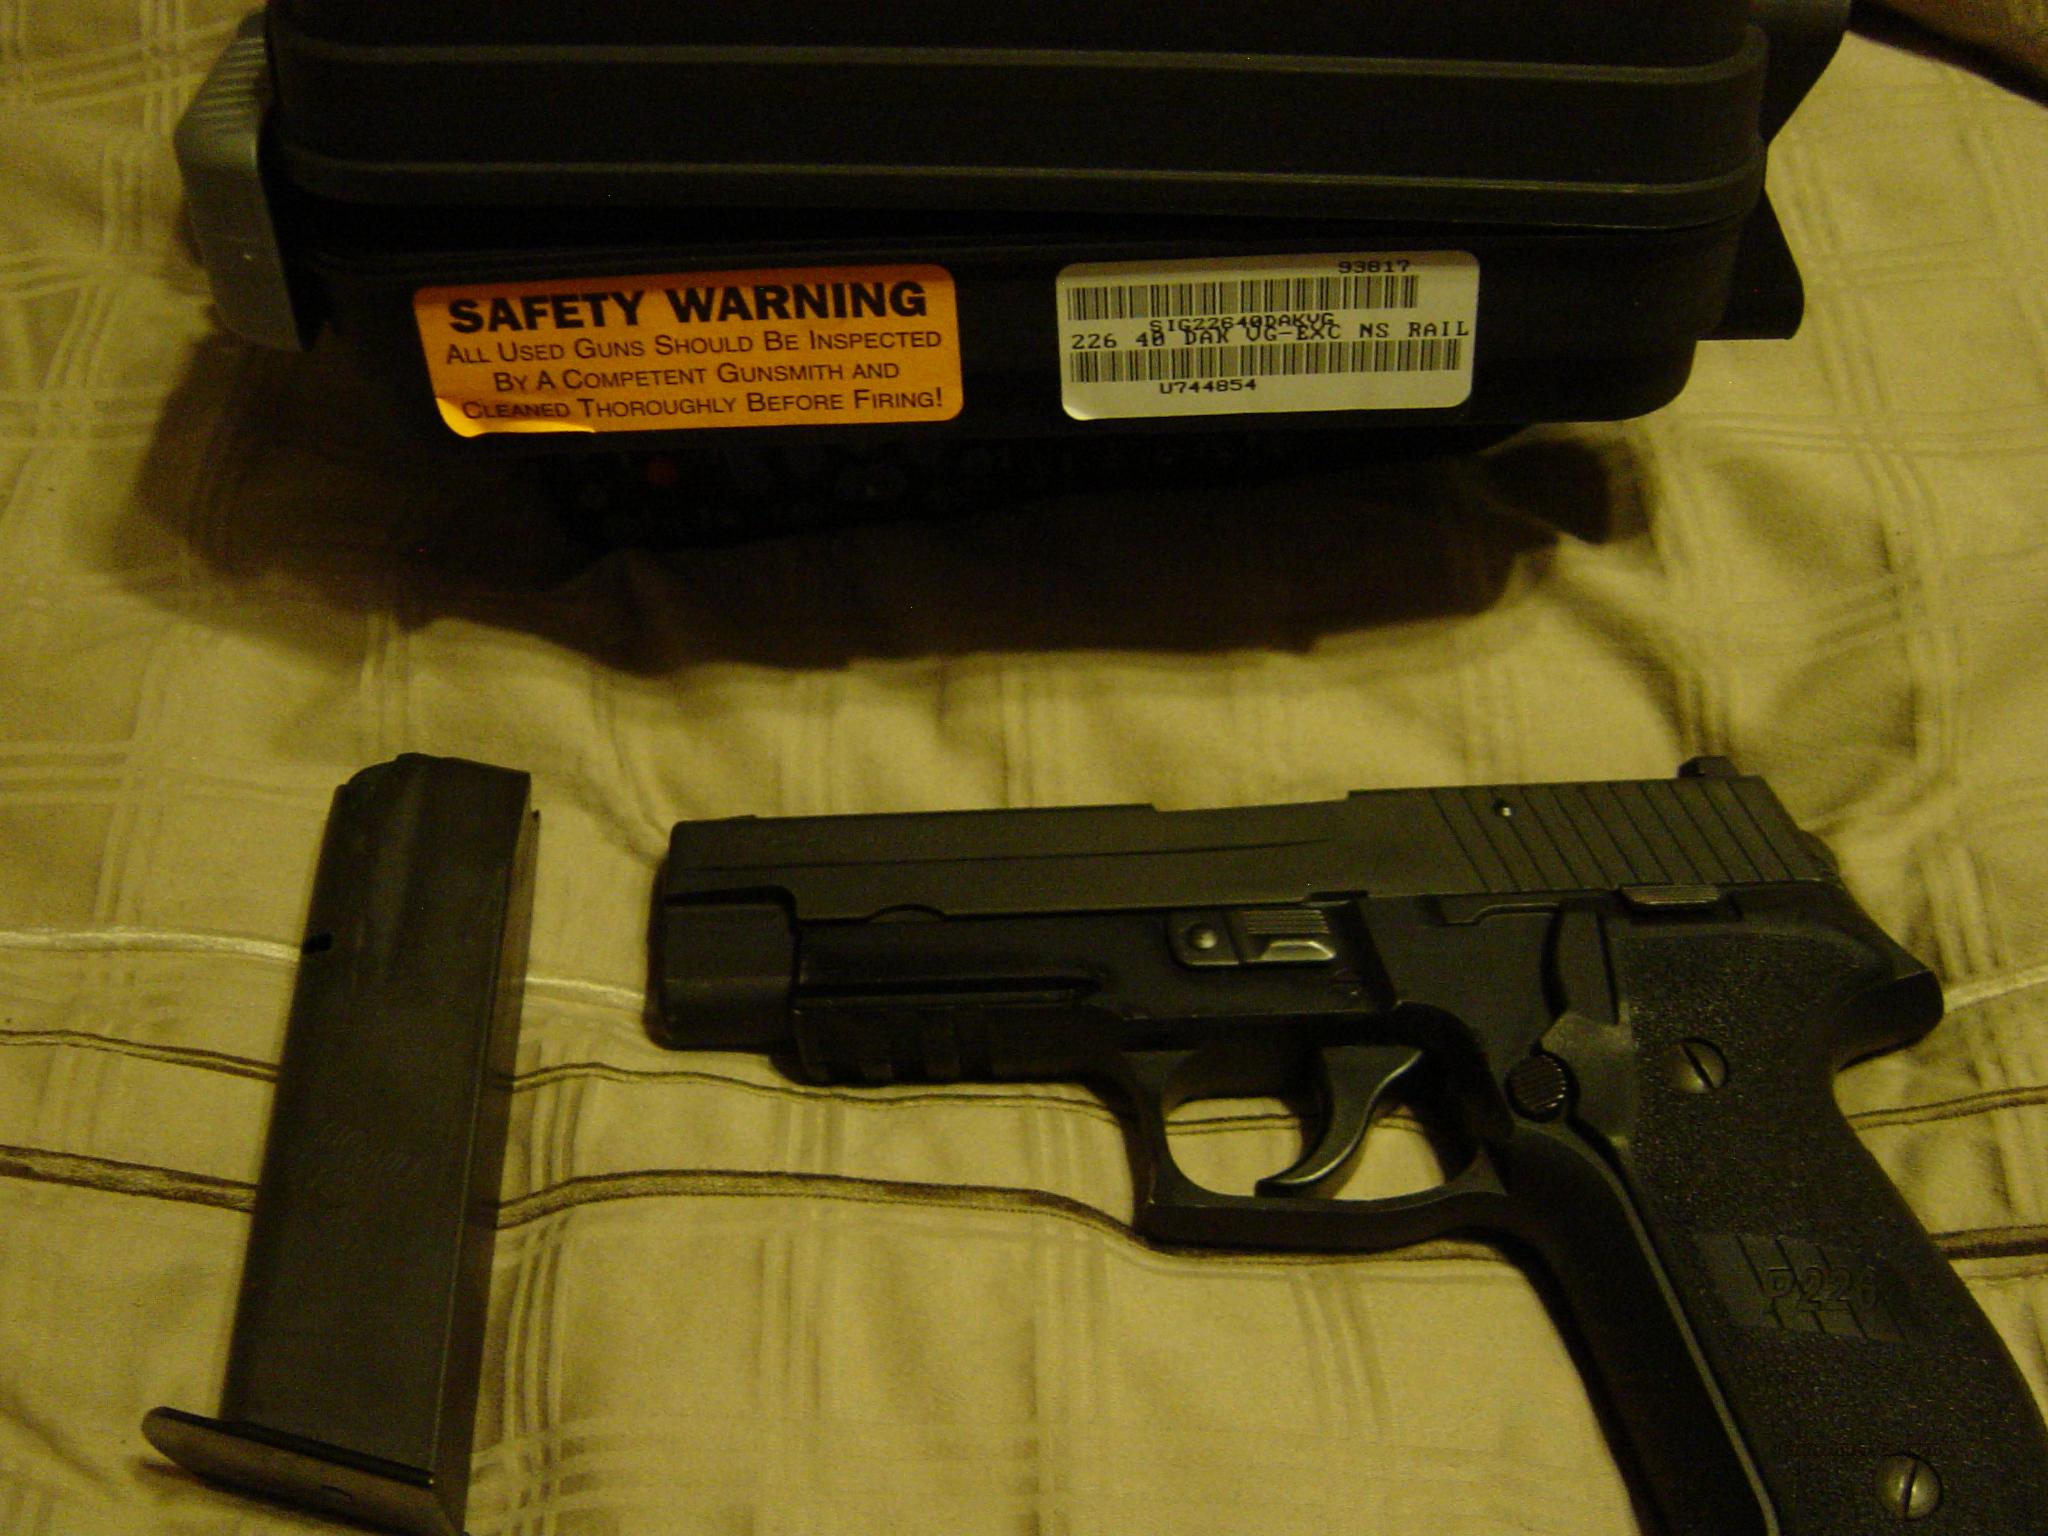 Sig Sauer P226 DAK 40 Smith & Wesson, Night Sights! 12 Round Hi-Capacity, Stainless  Guns > Pistols > Sig - Sauer/Sigarms Pistols > P226